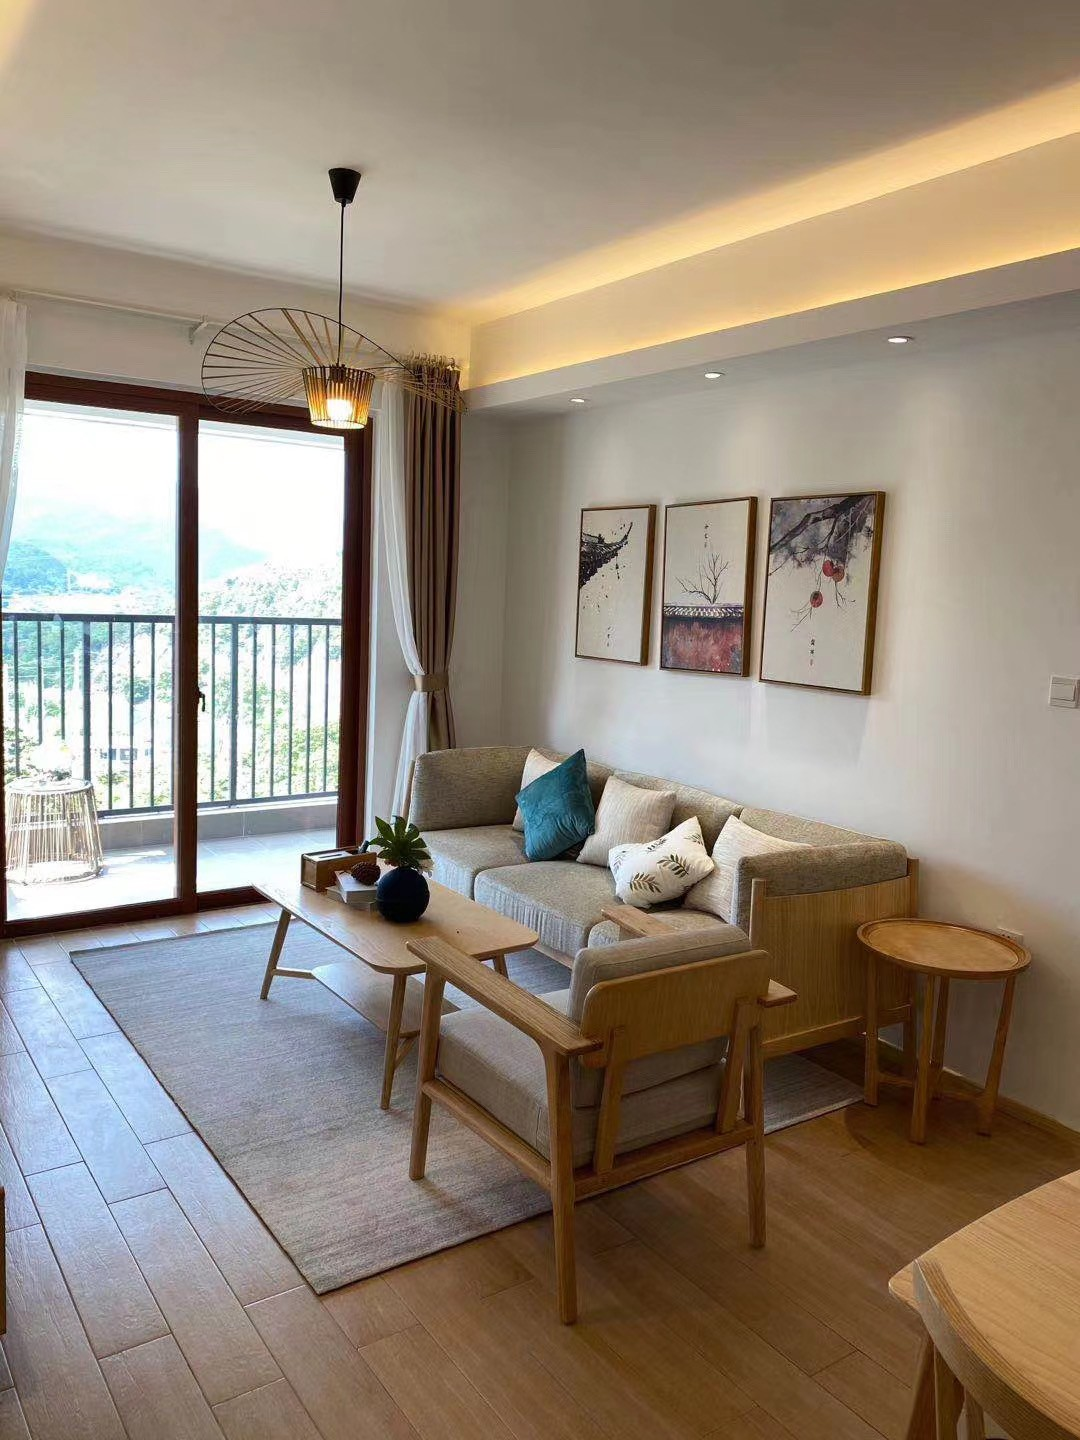 news-GOJO-Resort Hotels Are Becoming More and More Popular-img-1